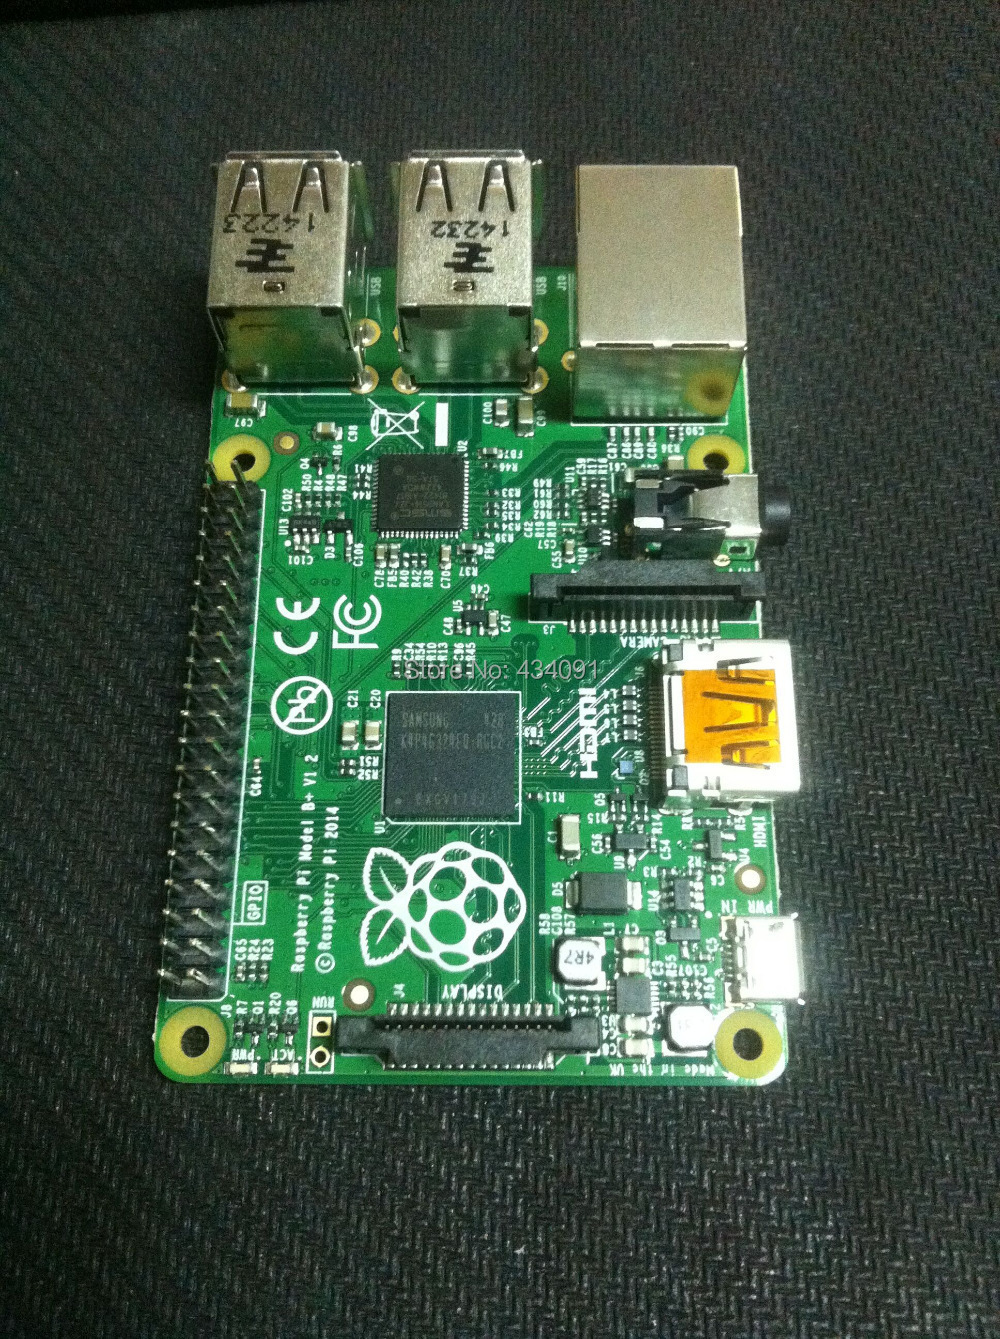 New original Raspberry Pi Model B+ 512MB RAM MADE IN THE UK Micro computer main board/panel - Global electronic accessories co., LTD store